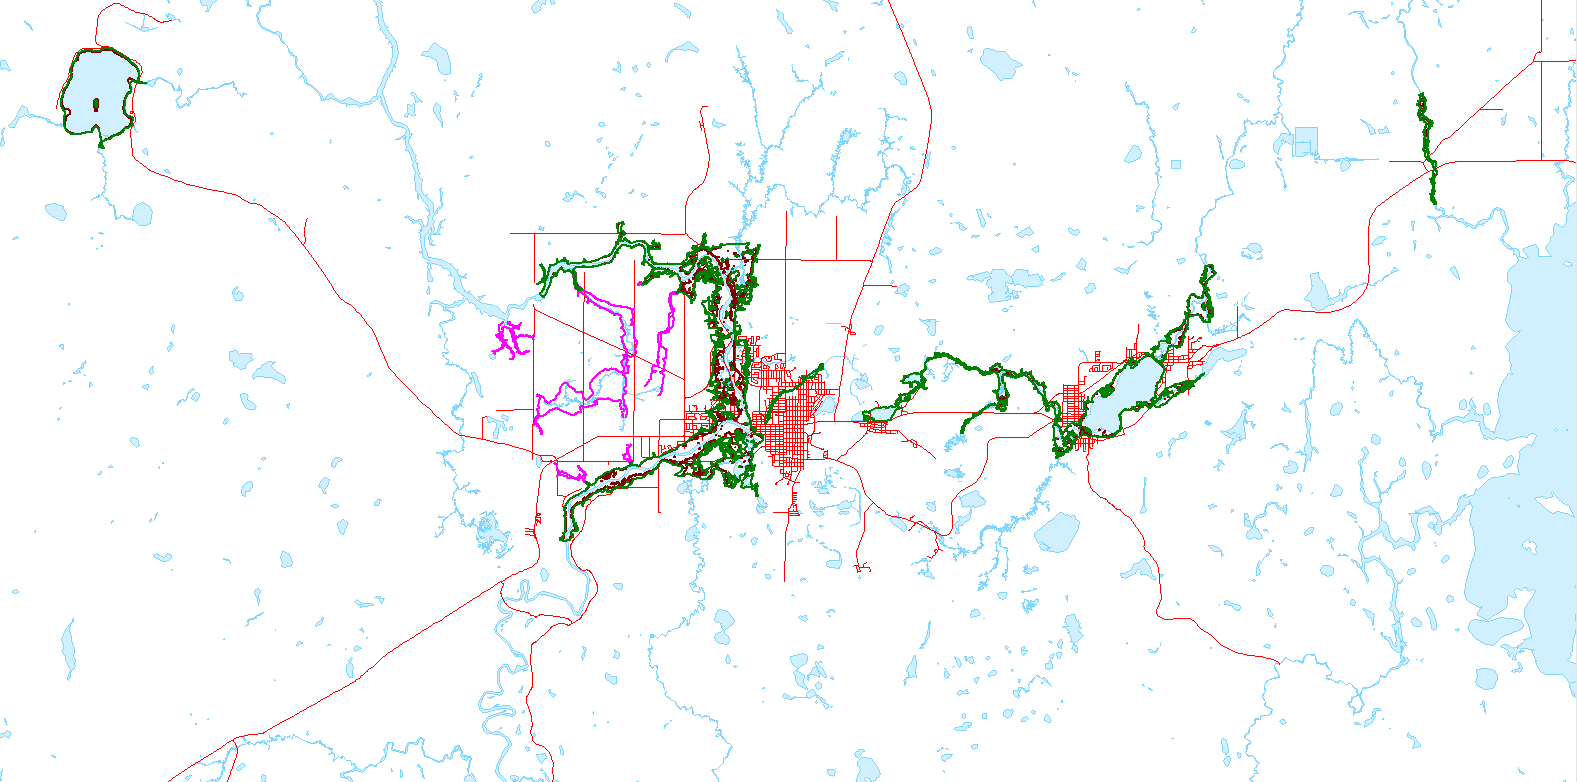 Timmins floodplain mapping